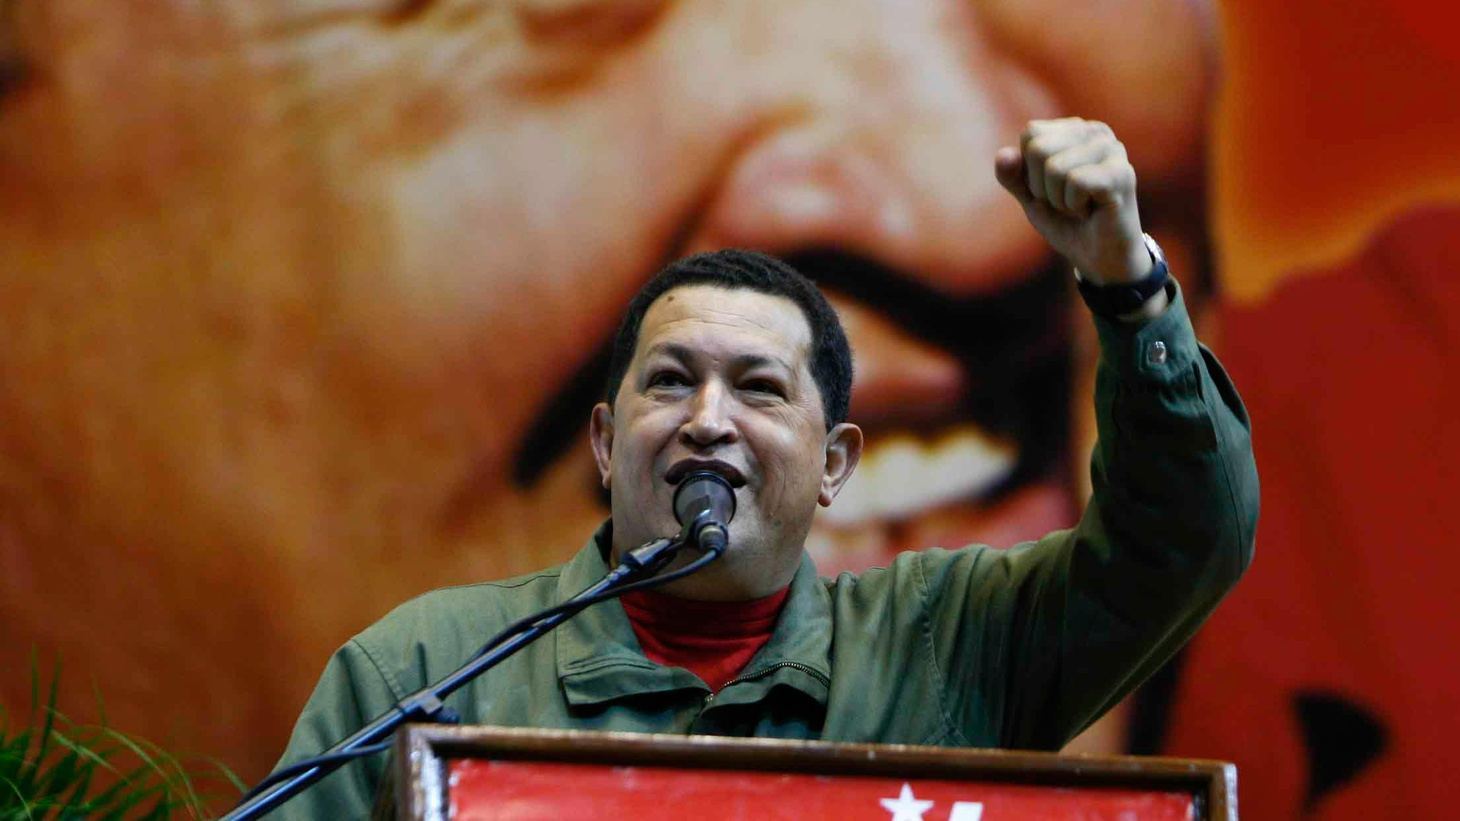 Venezuela is in mourning for President Hugo Chavez, who died yesterday in Caracas. As Latin American leaders arrive to pay their respects, we look at his life and legacy.